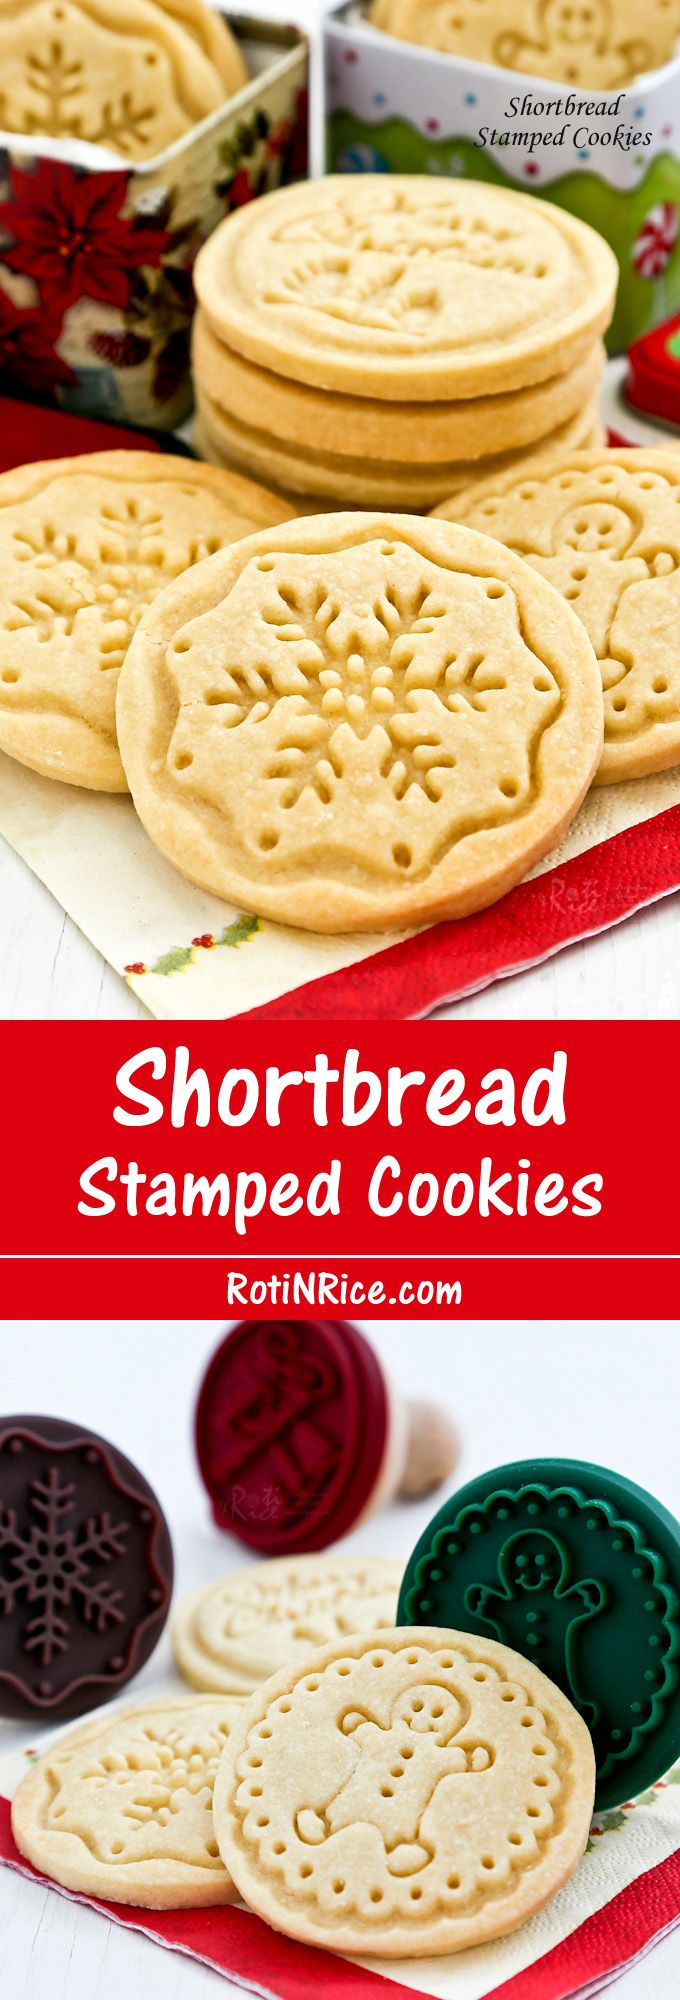 Buttery melt-in-the-mouth Shortbread Stamped Cookies using only 4 simple ingredients. A ...